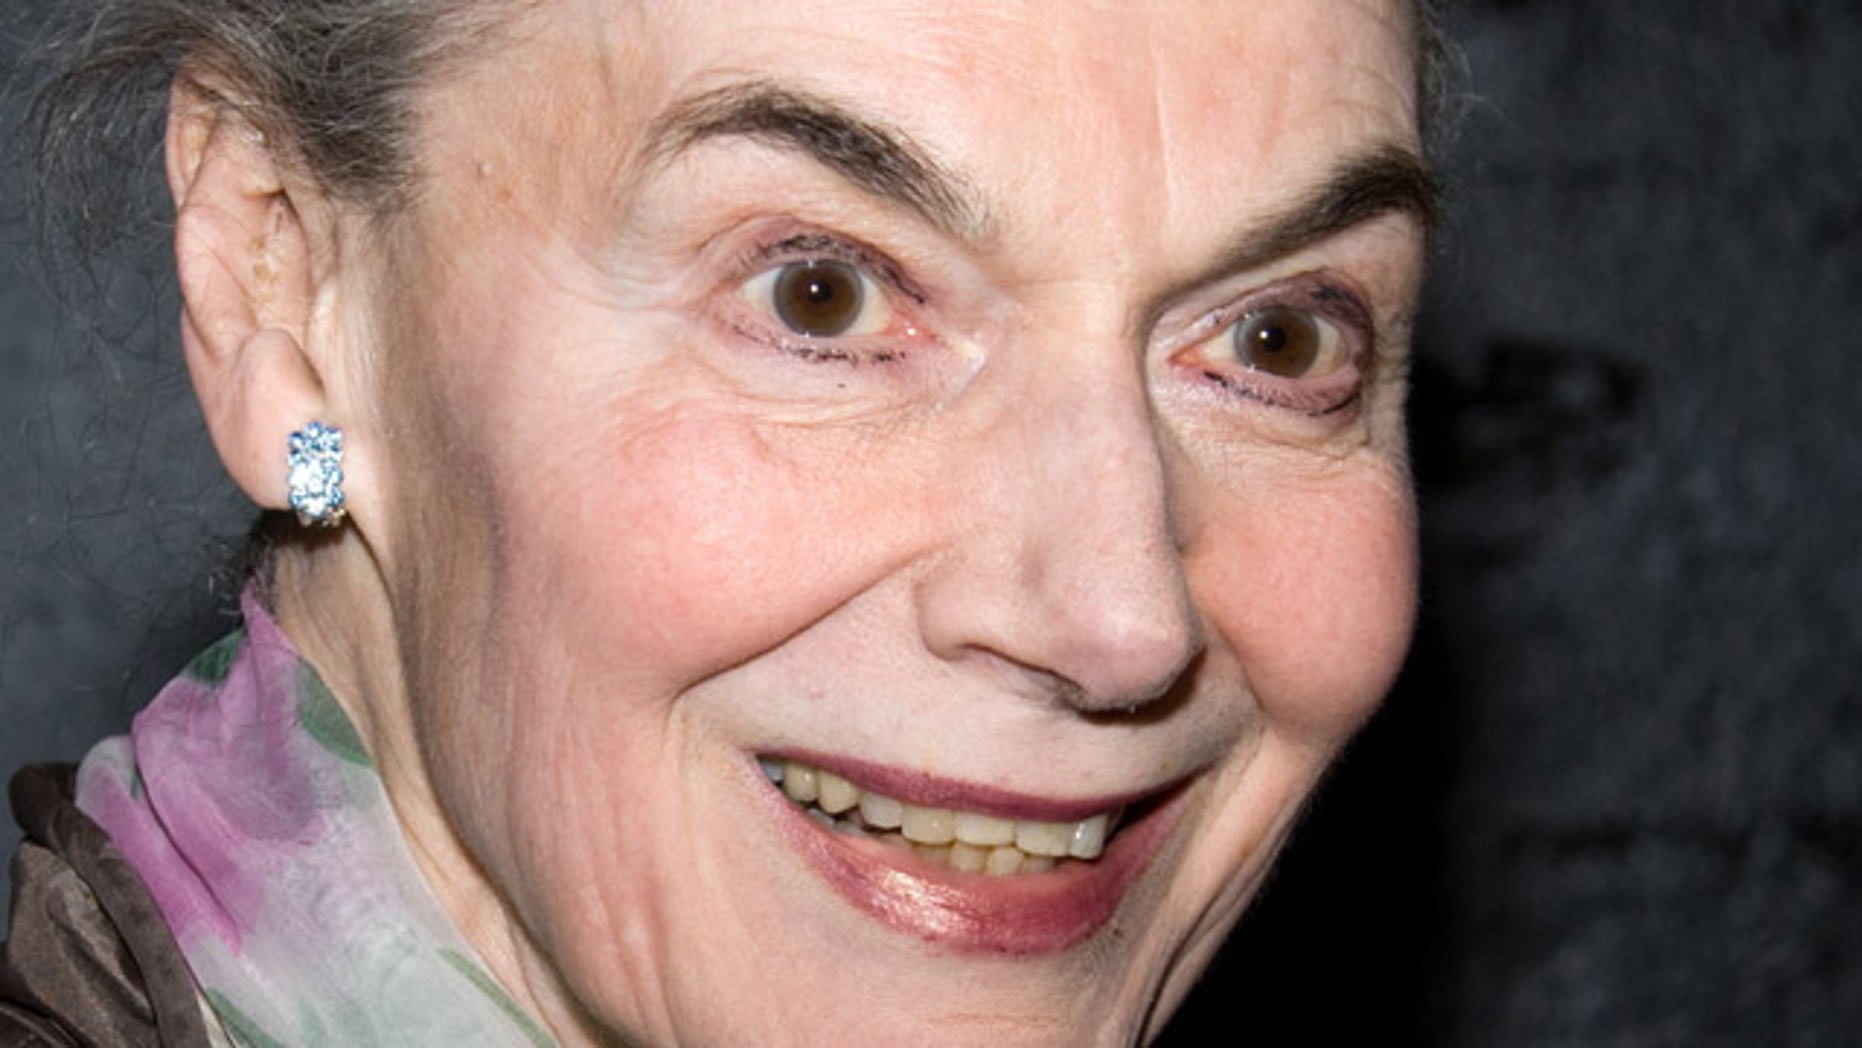 FILE - In this April 20, 2010 file photo, Marian Seldes arrives at the opening night performance of the Broadway musical 'American Idiot' in New York. (AP Photo/Charles Sykes, file)